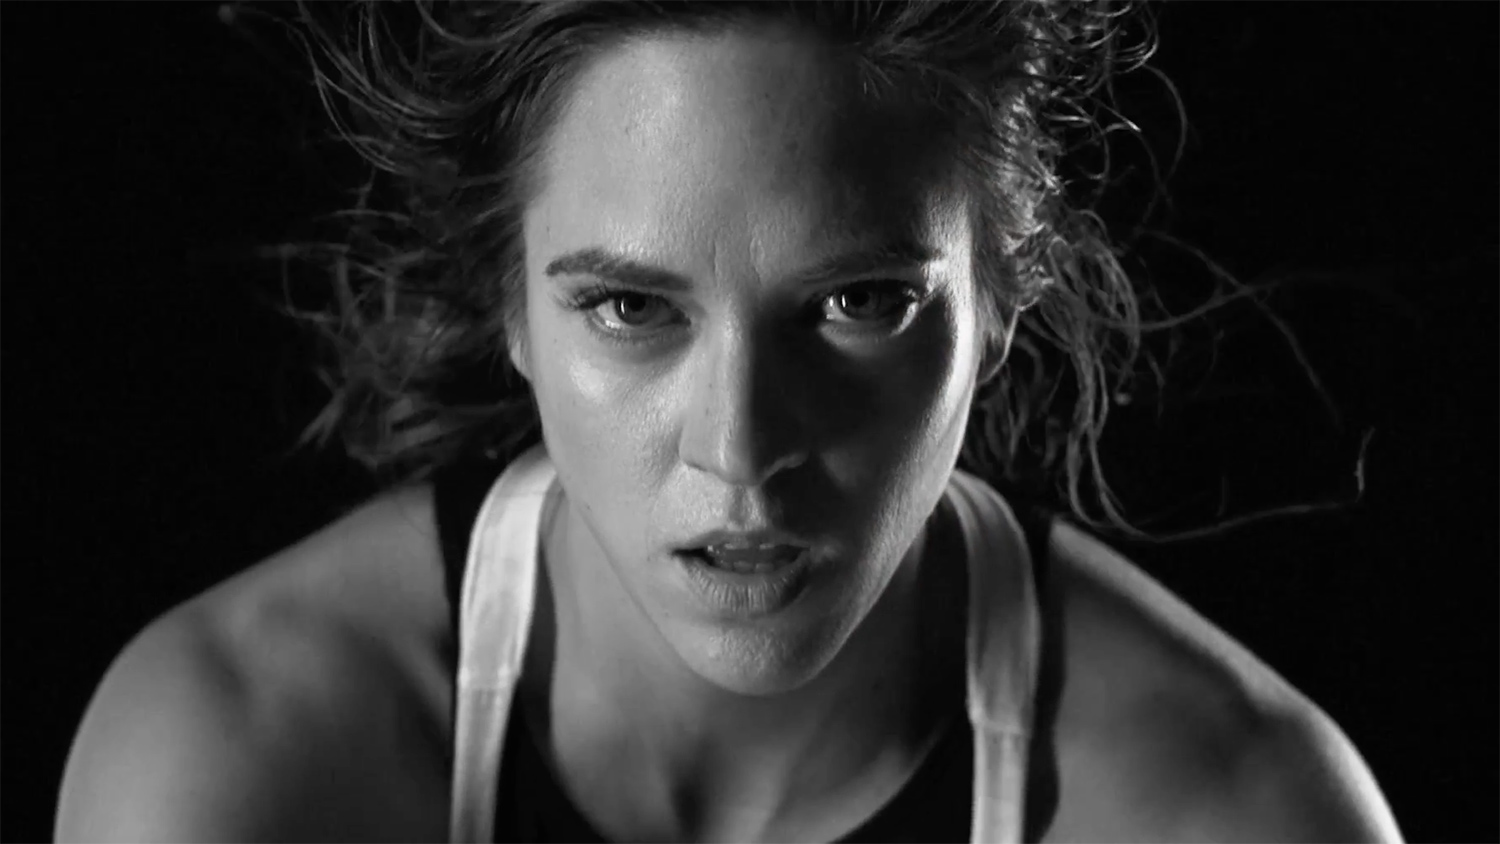 New SoulCycle Campaign Offers A Glimpse Into The Brand's Cult Phenomenon